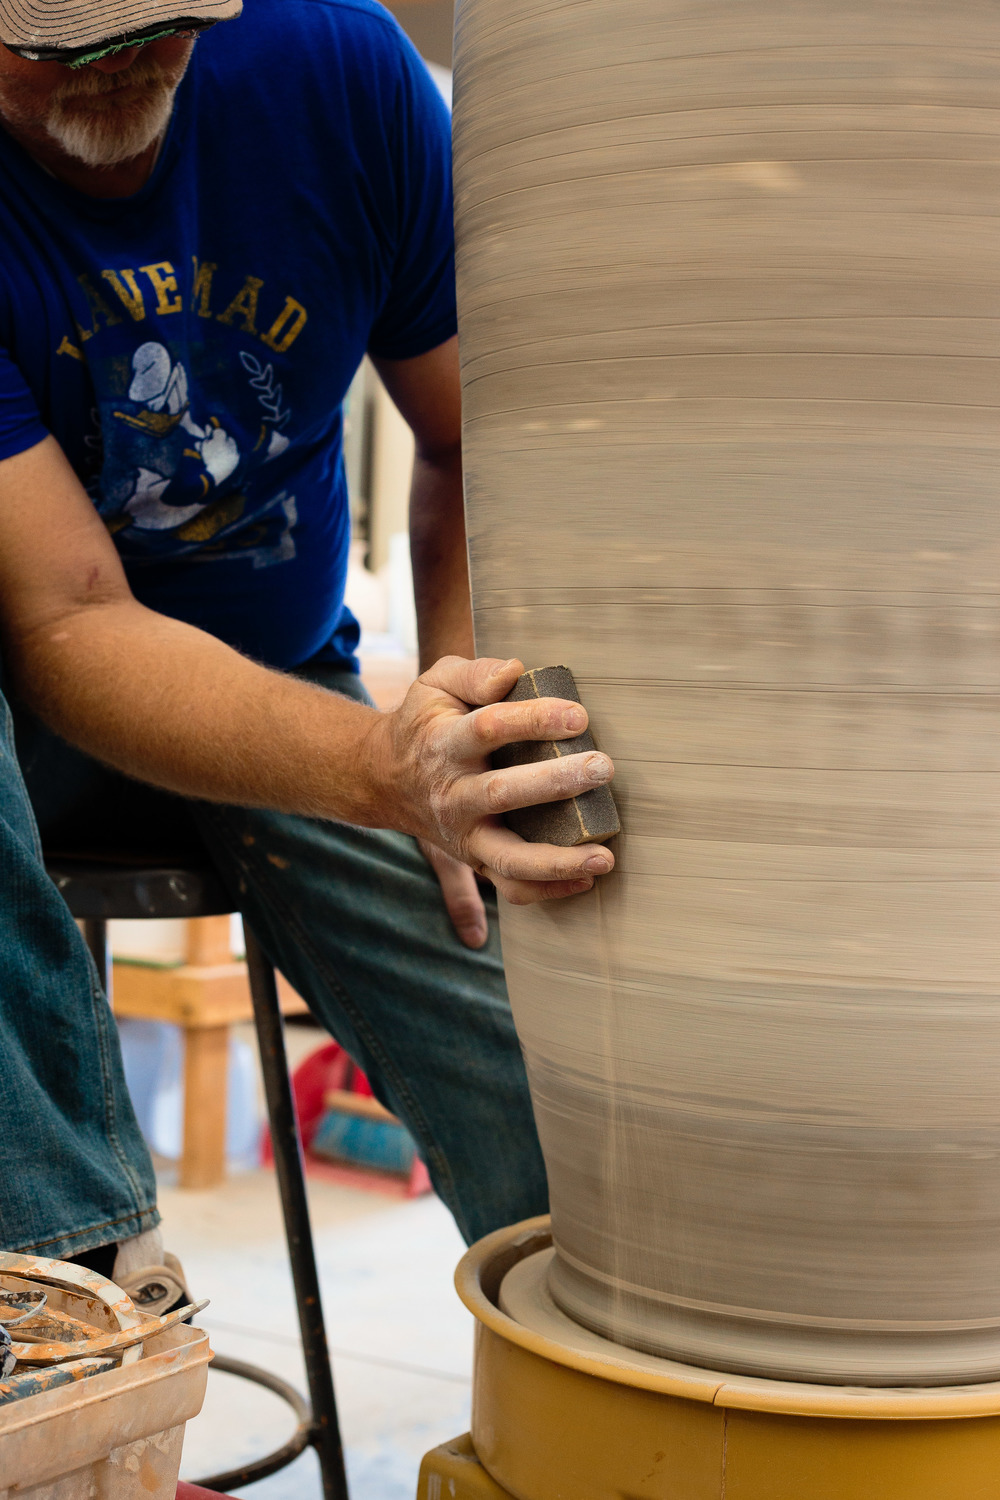 Potter working at pottery wheel